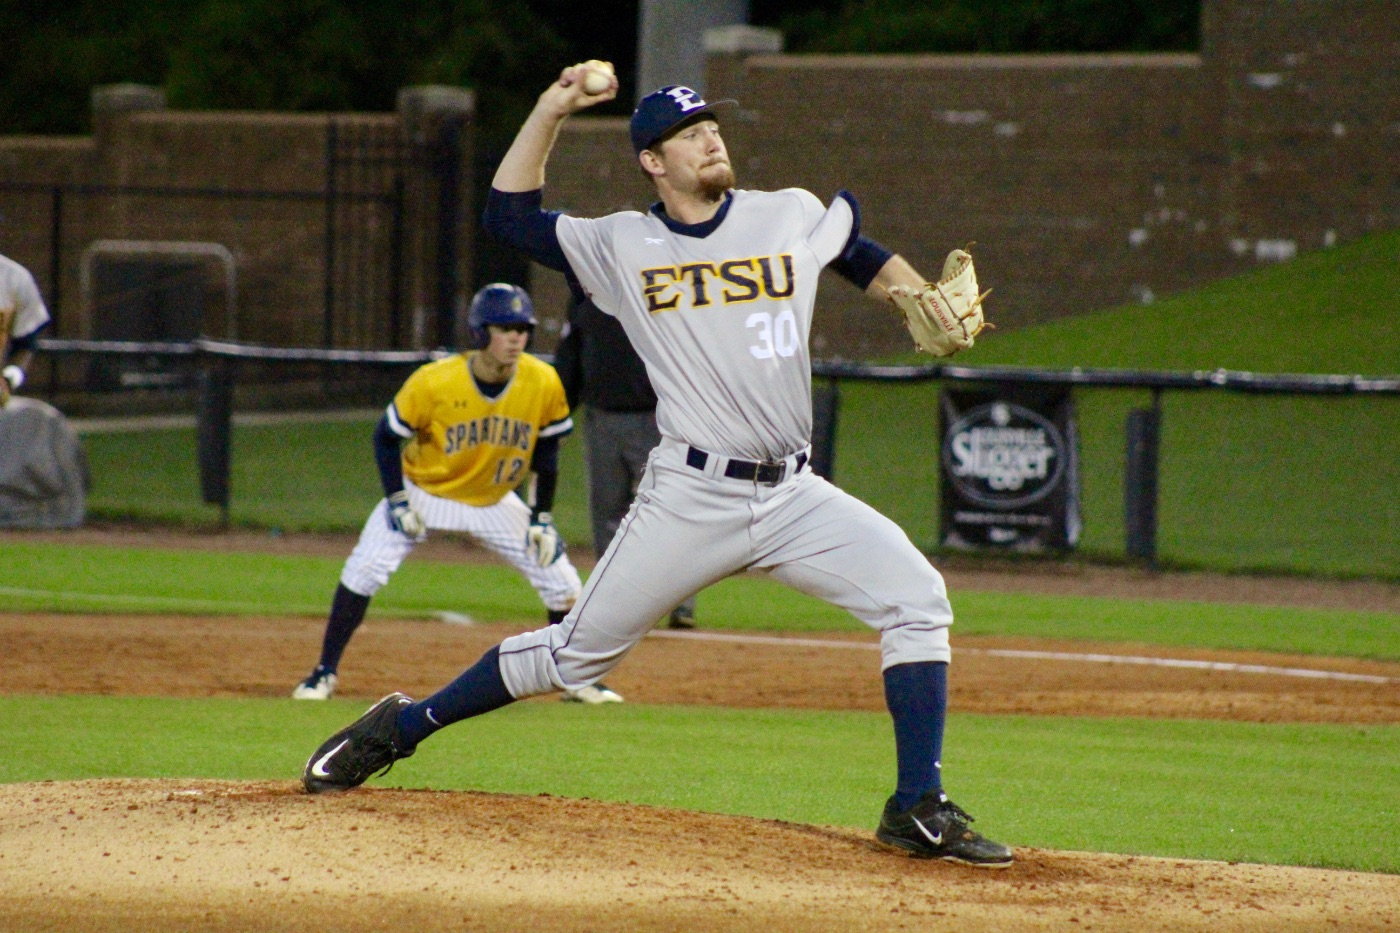 Bucs battle but fall to UNCG in series opener, 6-5